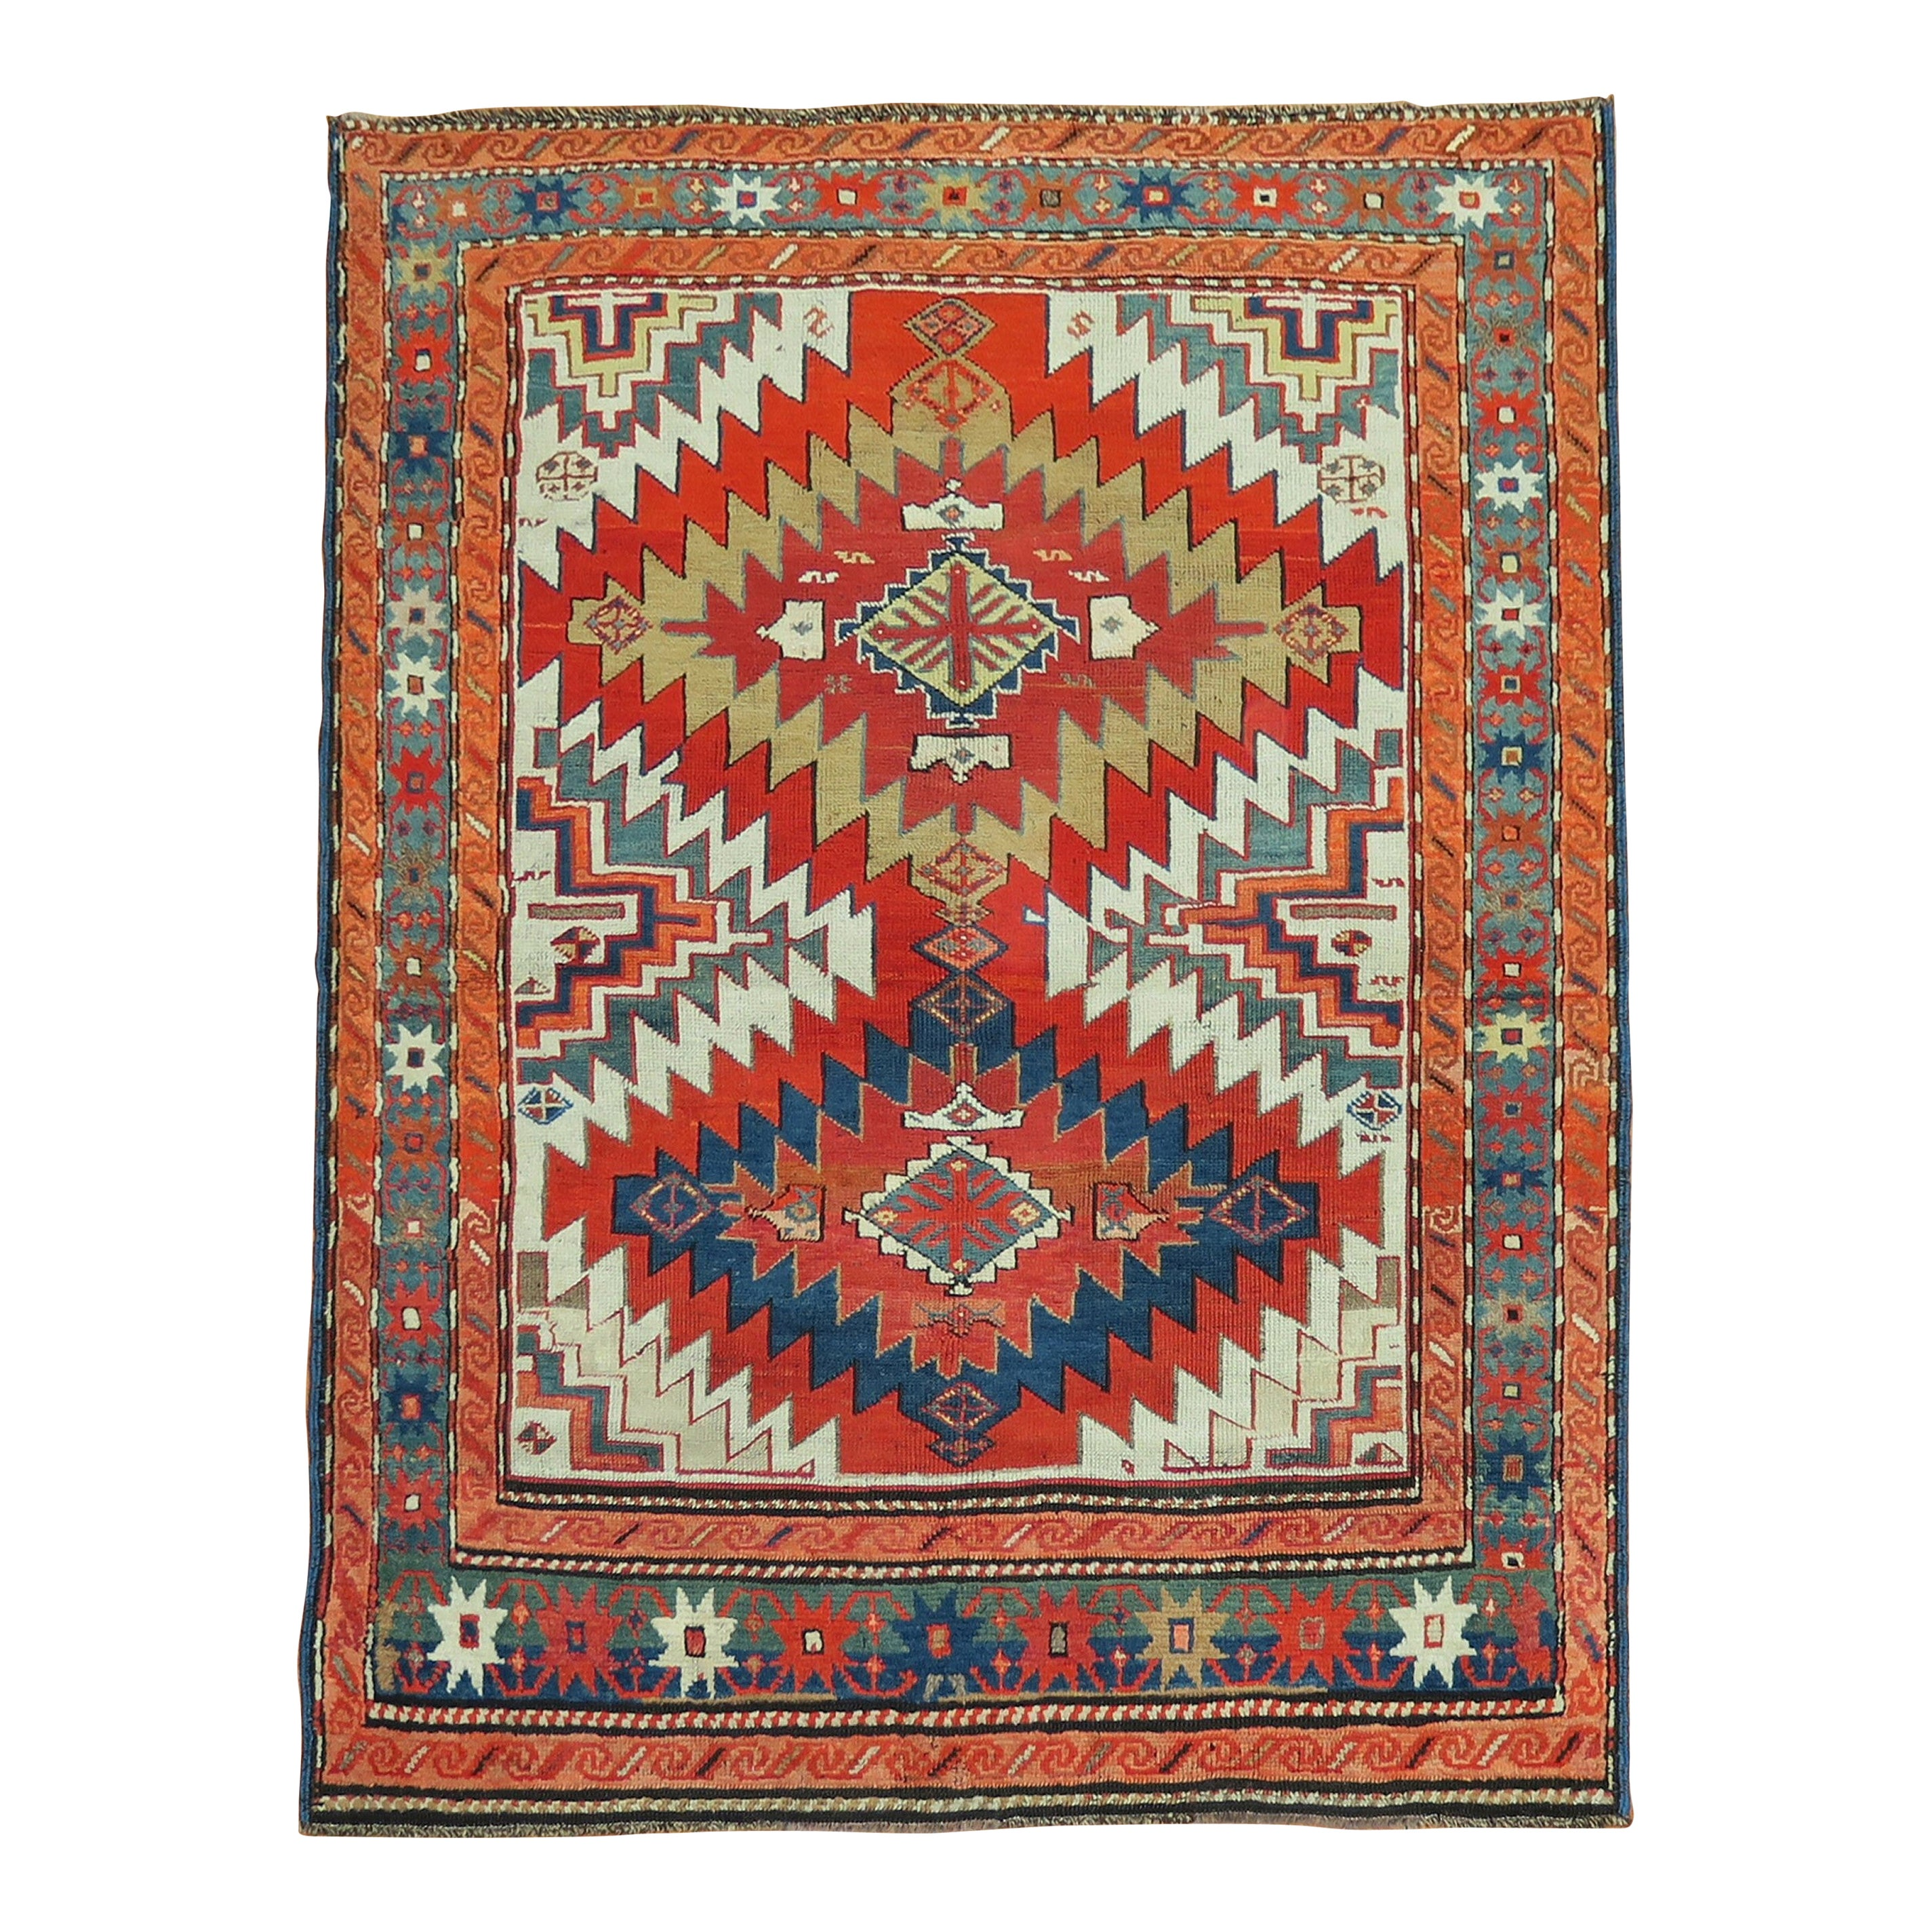 Dramatic Large Scale 20th Century Antique Russian Karabagh Square Rug